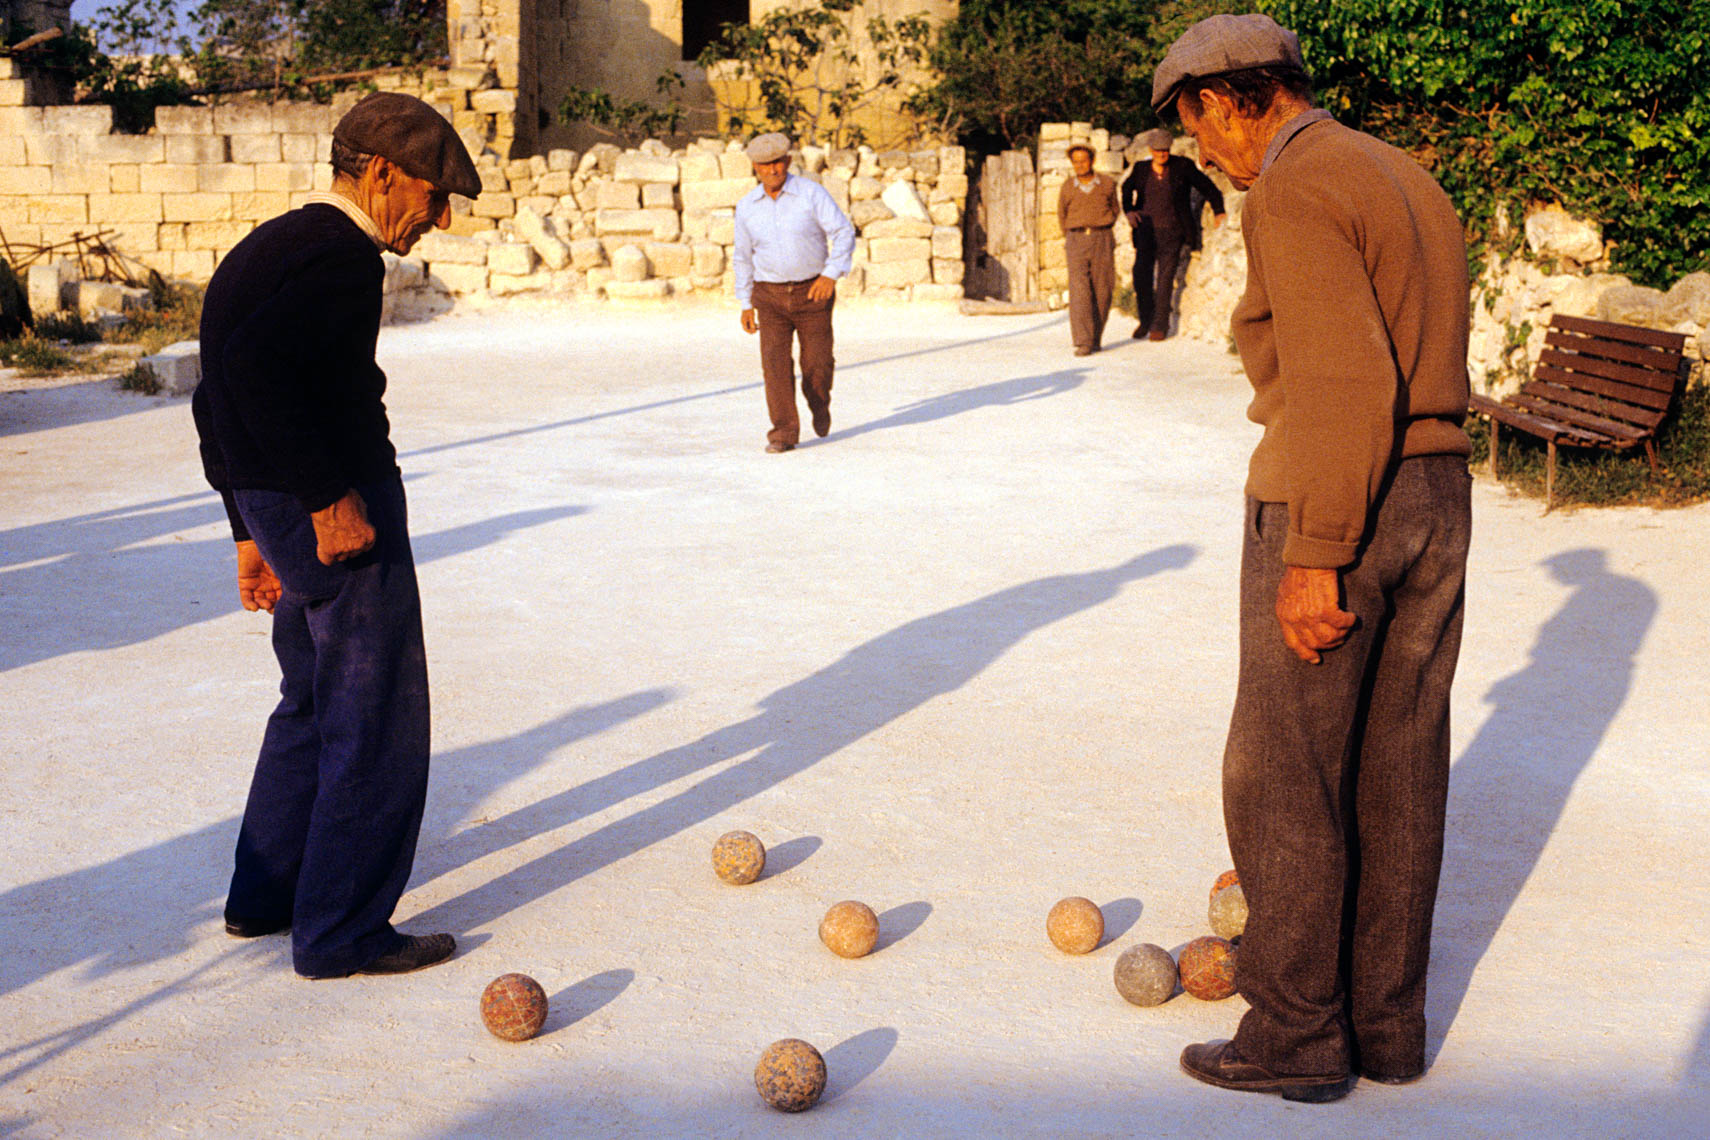 Bocce Ball Players | Tosca Radigonda Photography